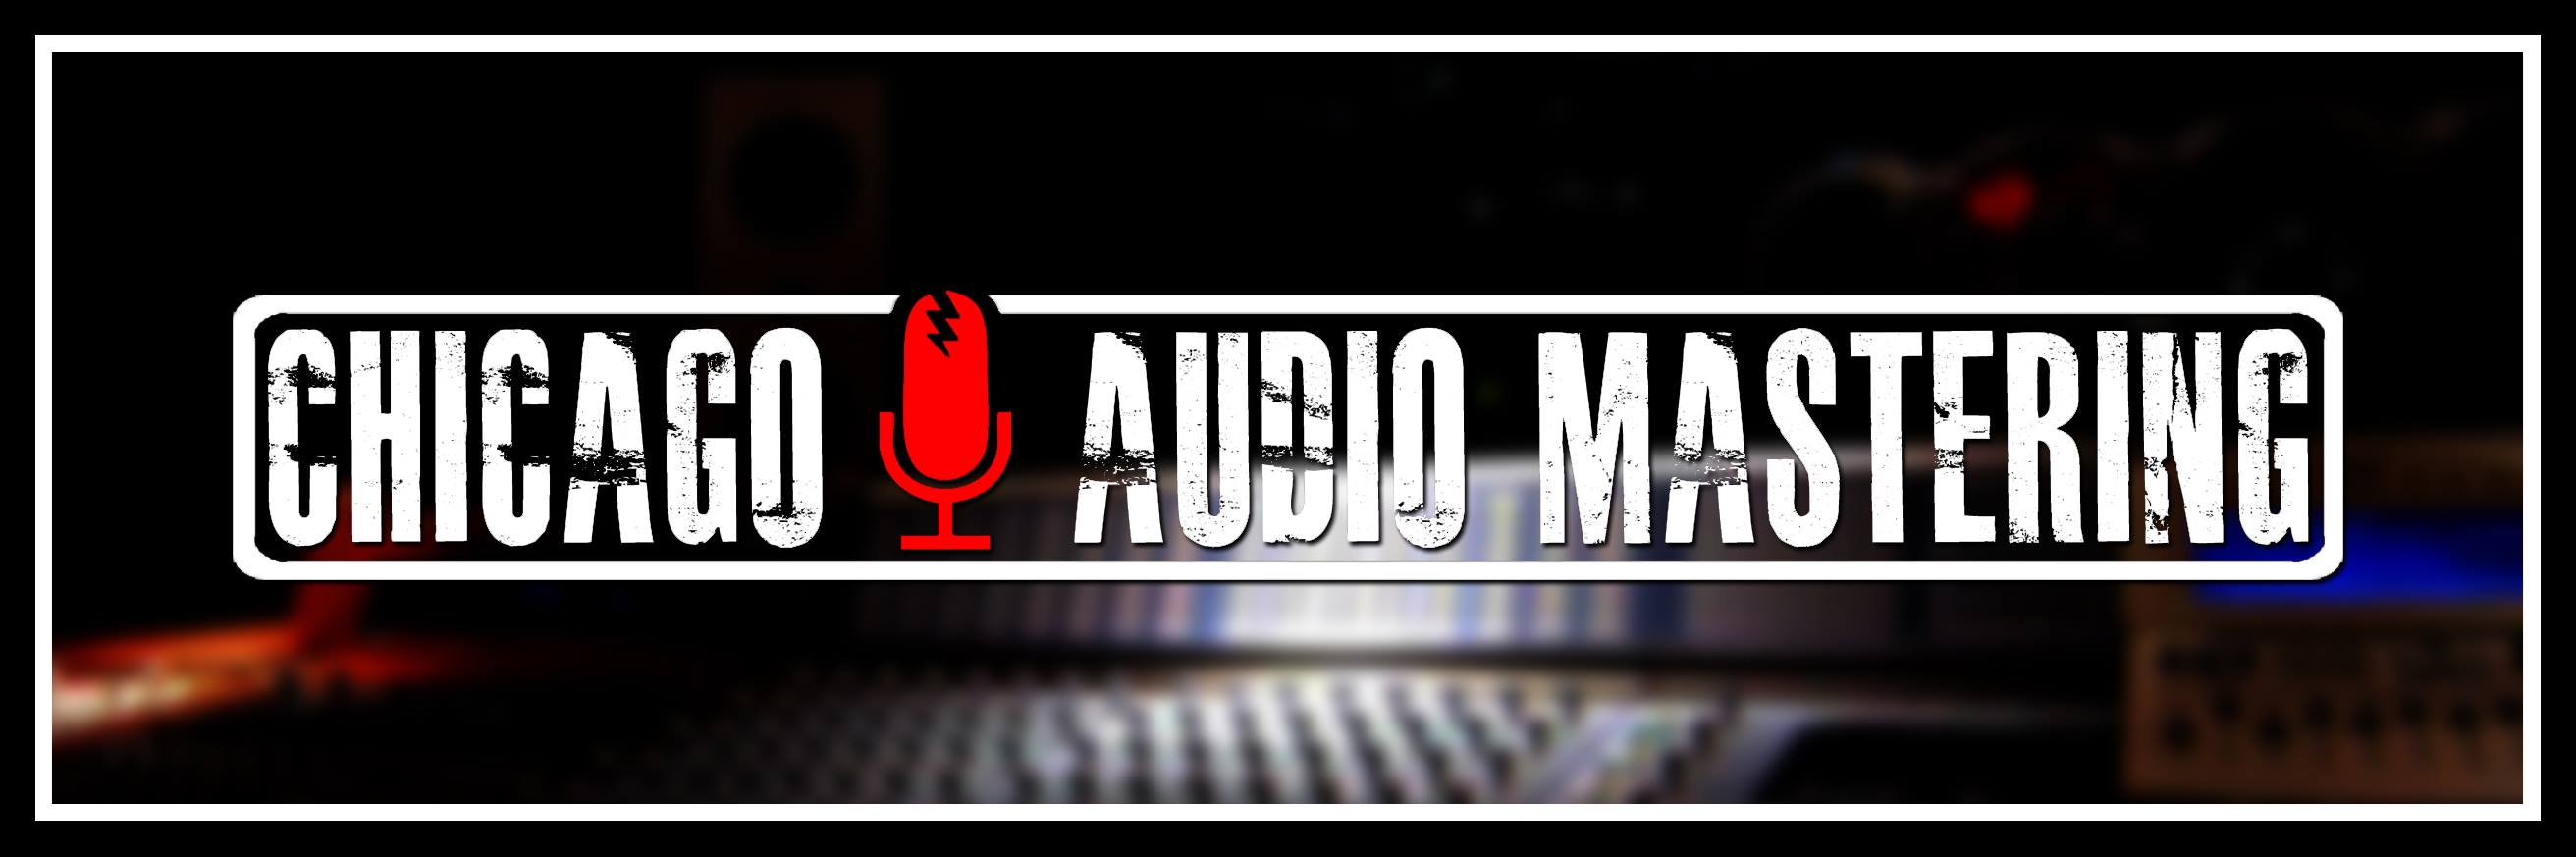 Chicago Audio Mastering